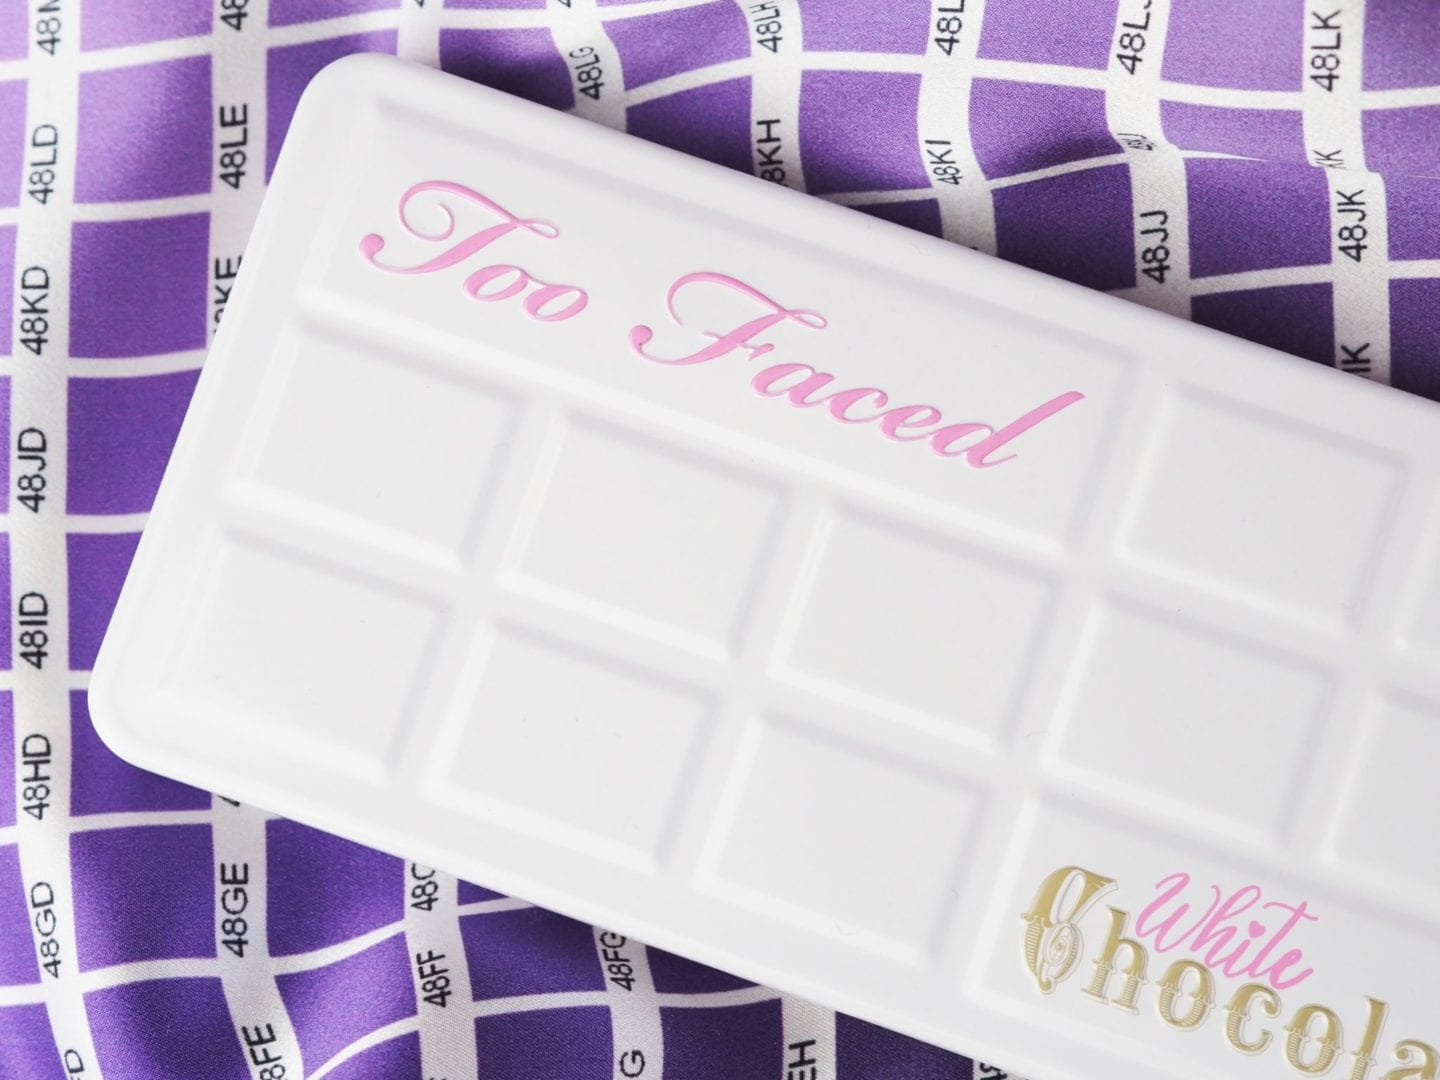 Too Faced 'White Chocolate Bar' Palette